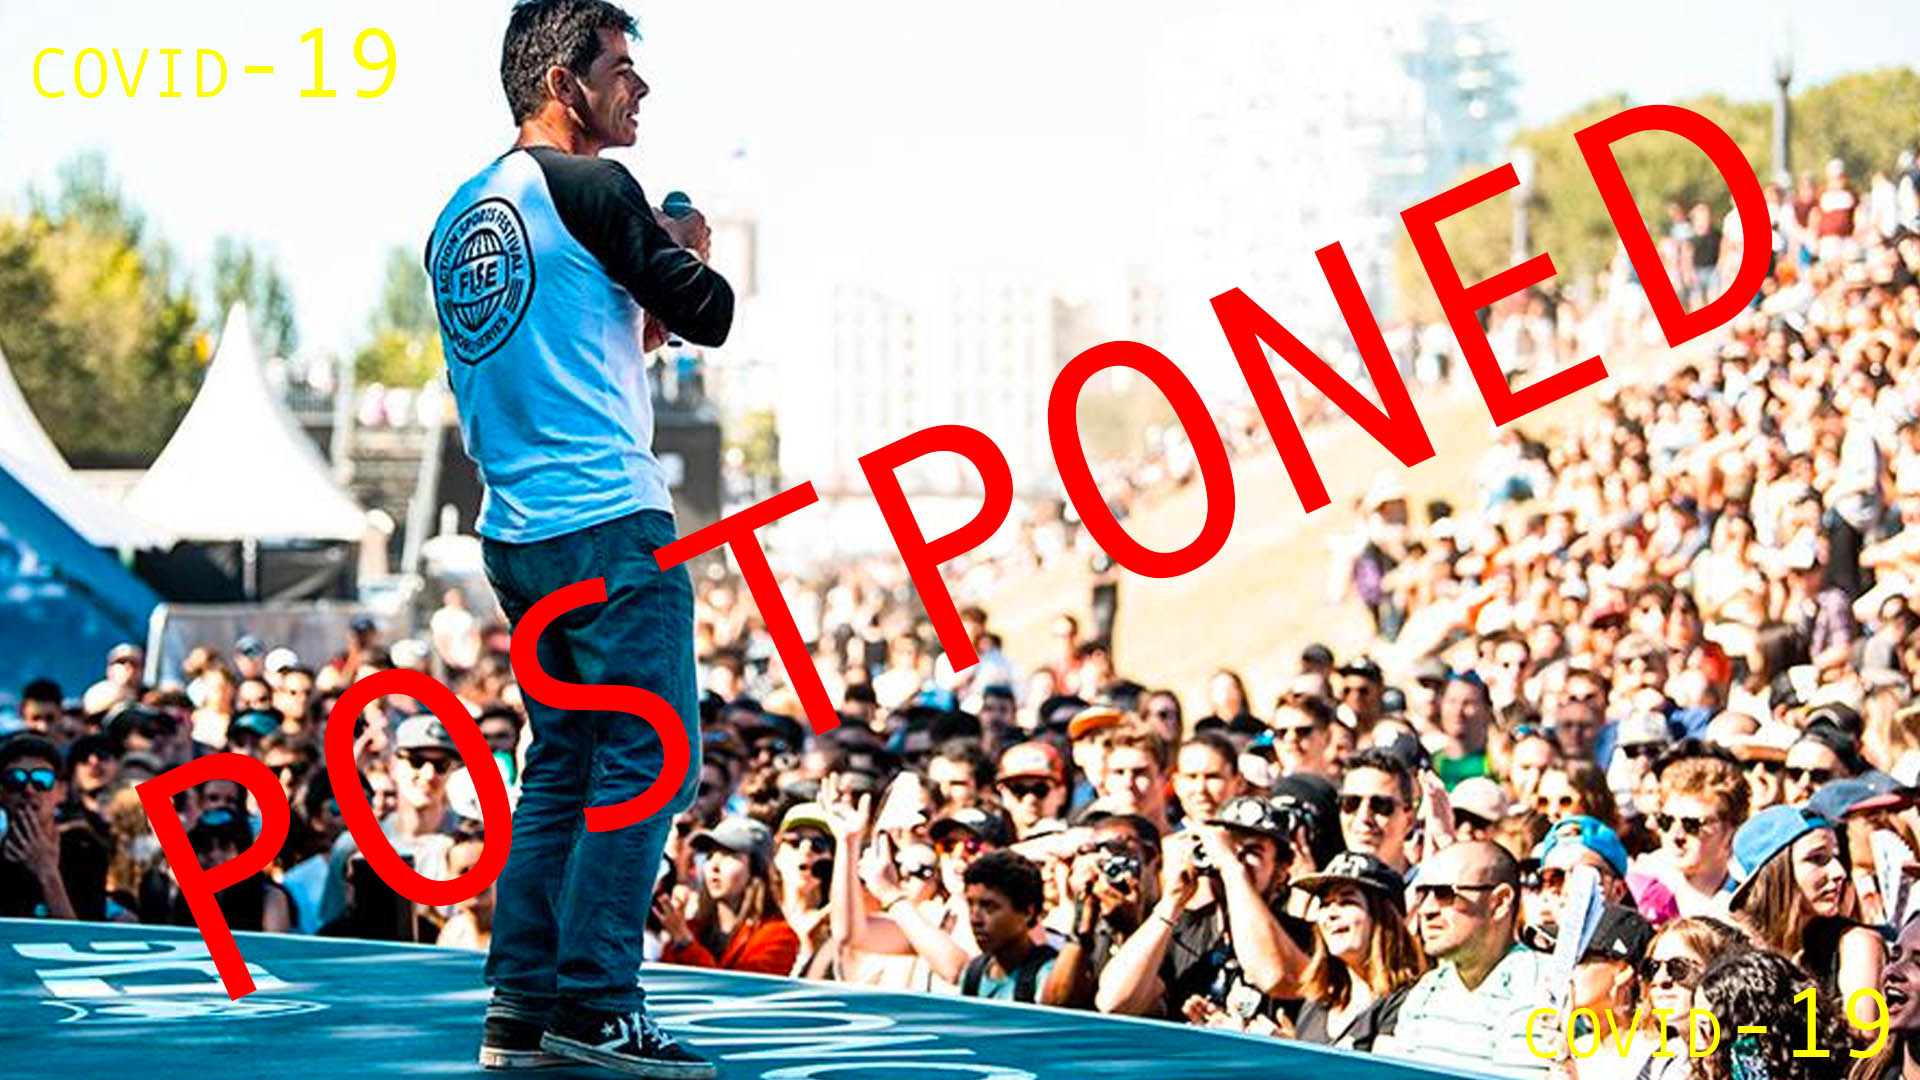 POSTPONED: FISE Montpellier 2020 - new date August TBC